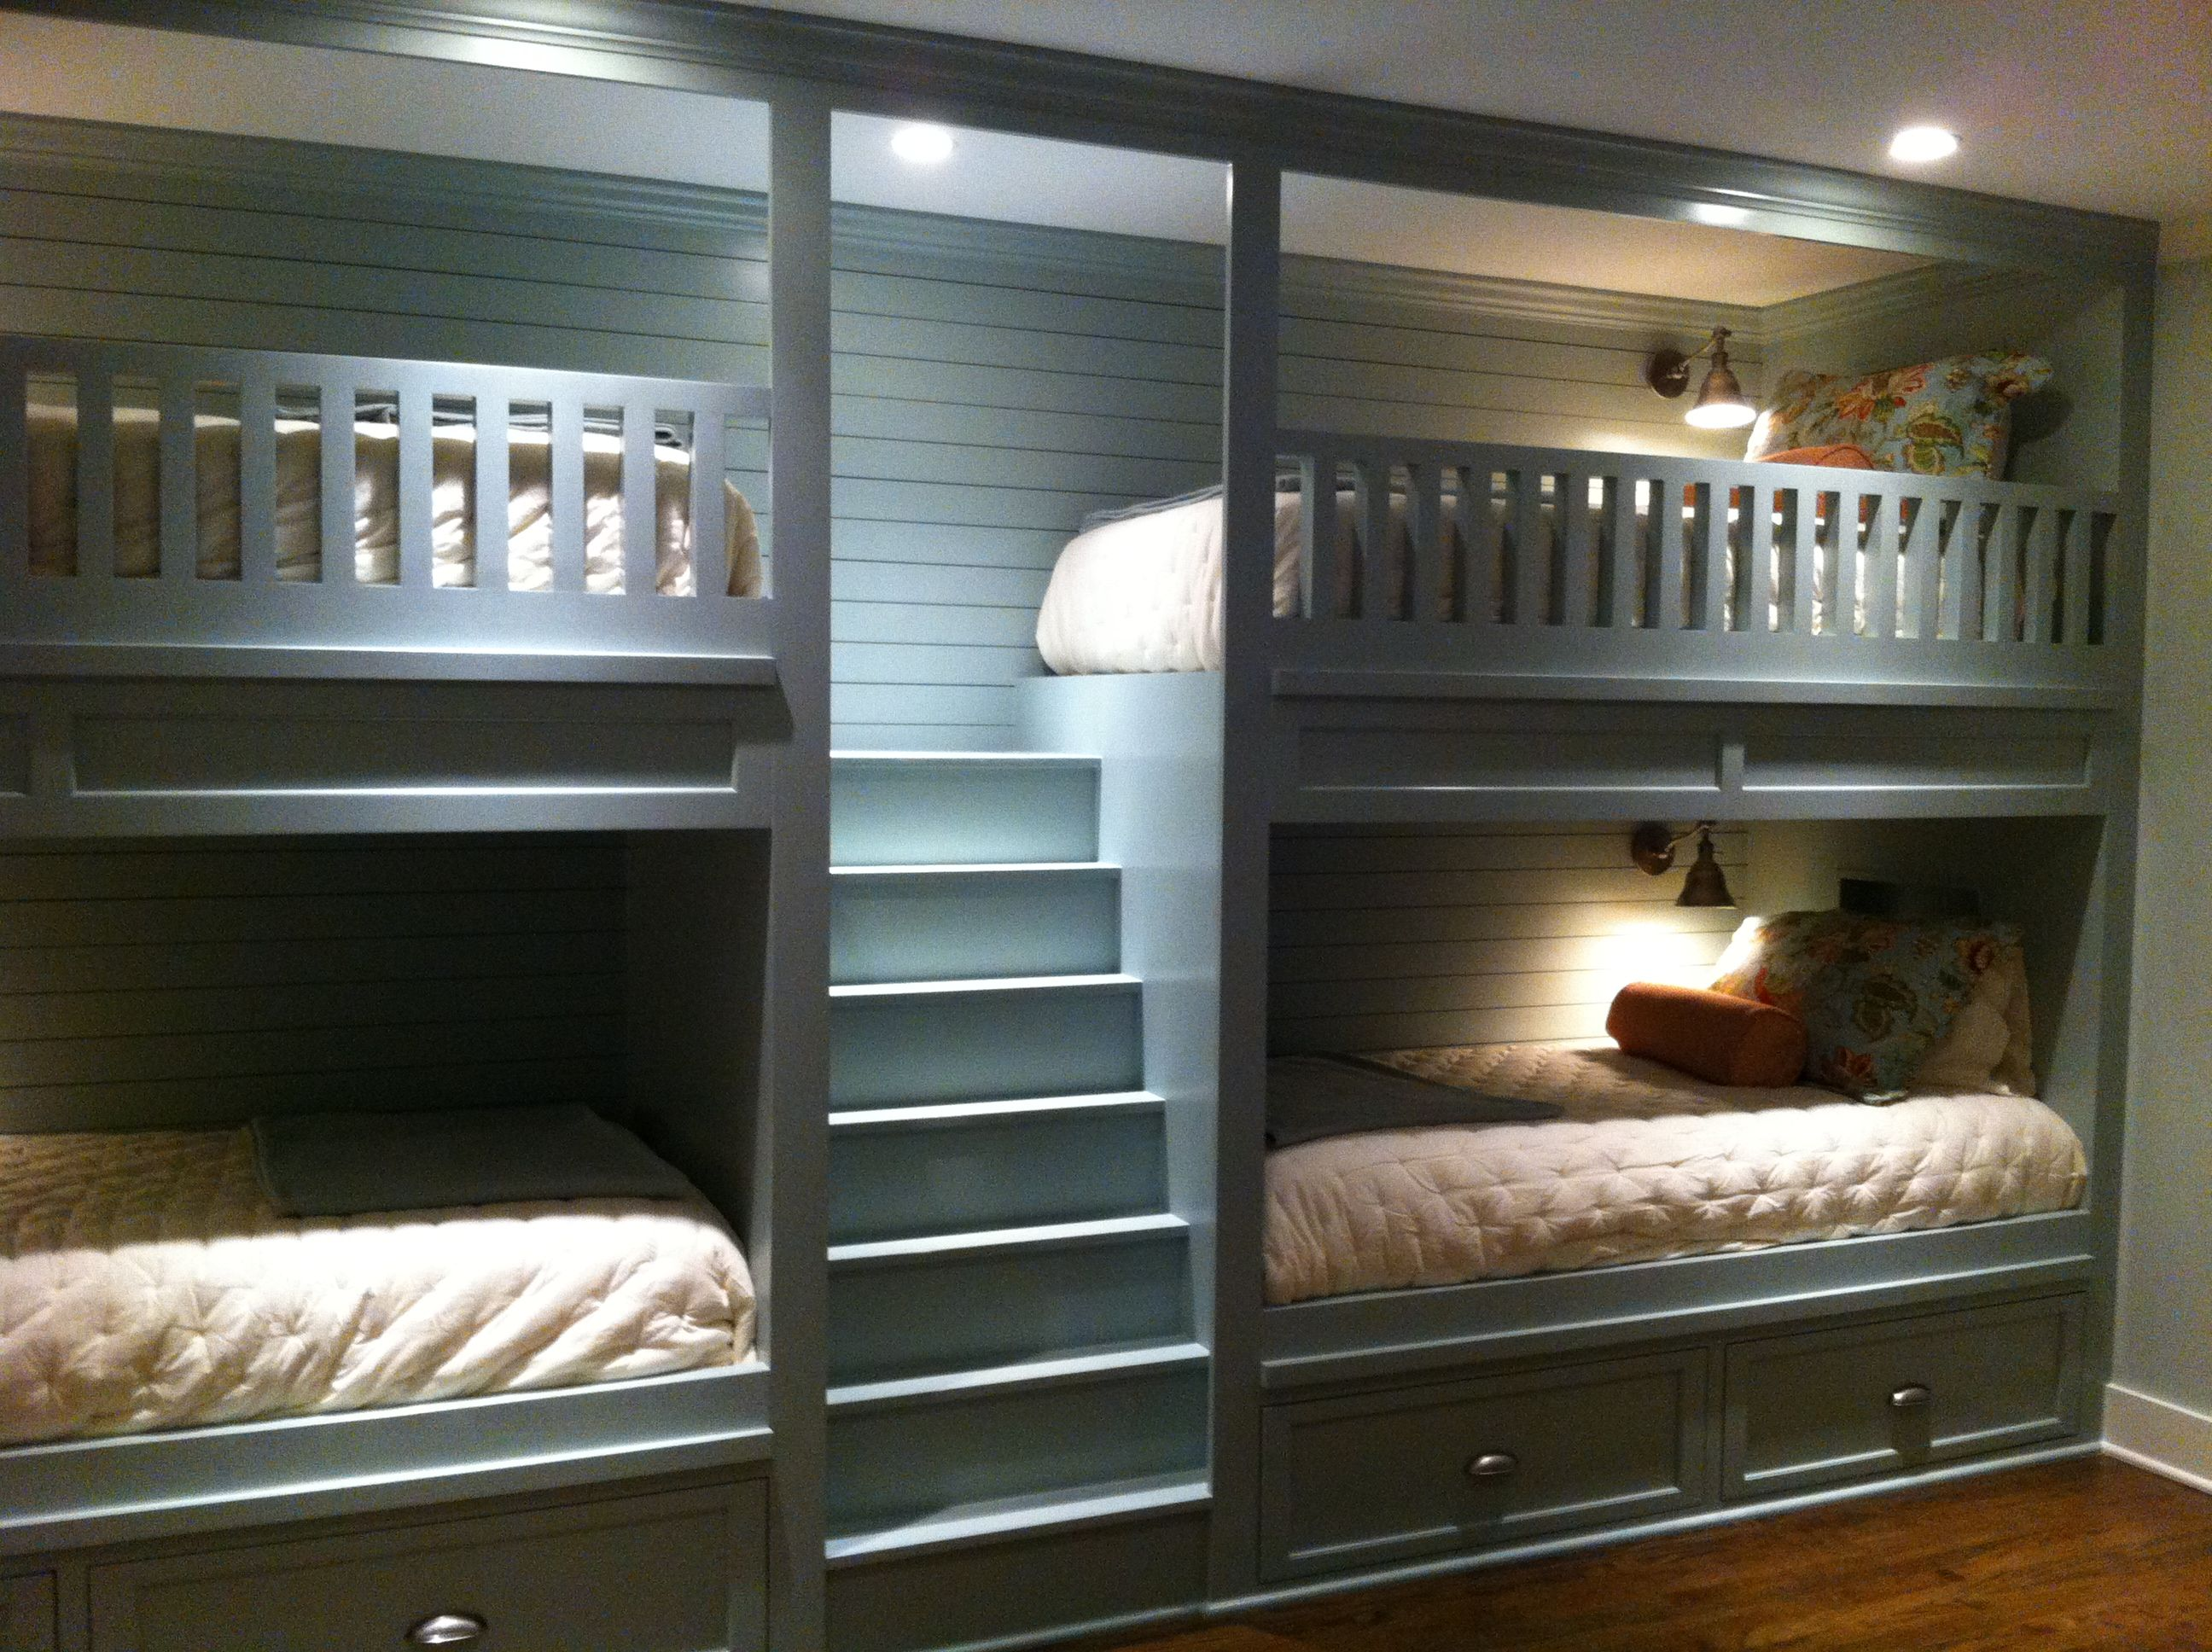 Double bunk beds in our new basement bunk room. Fun for ...